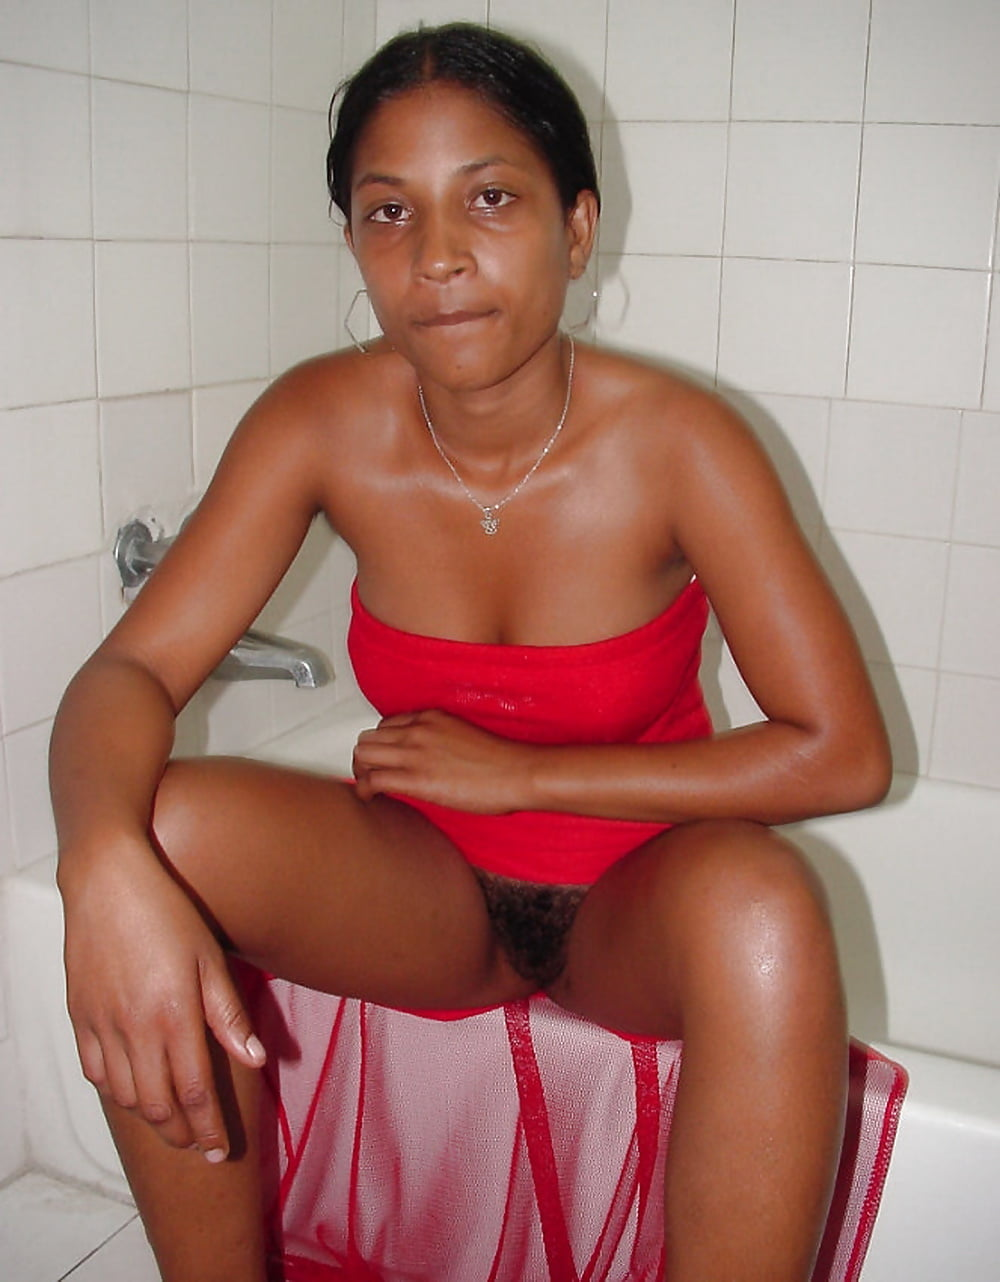 Sri lankan girl nude panty photo #13